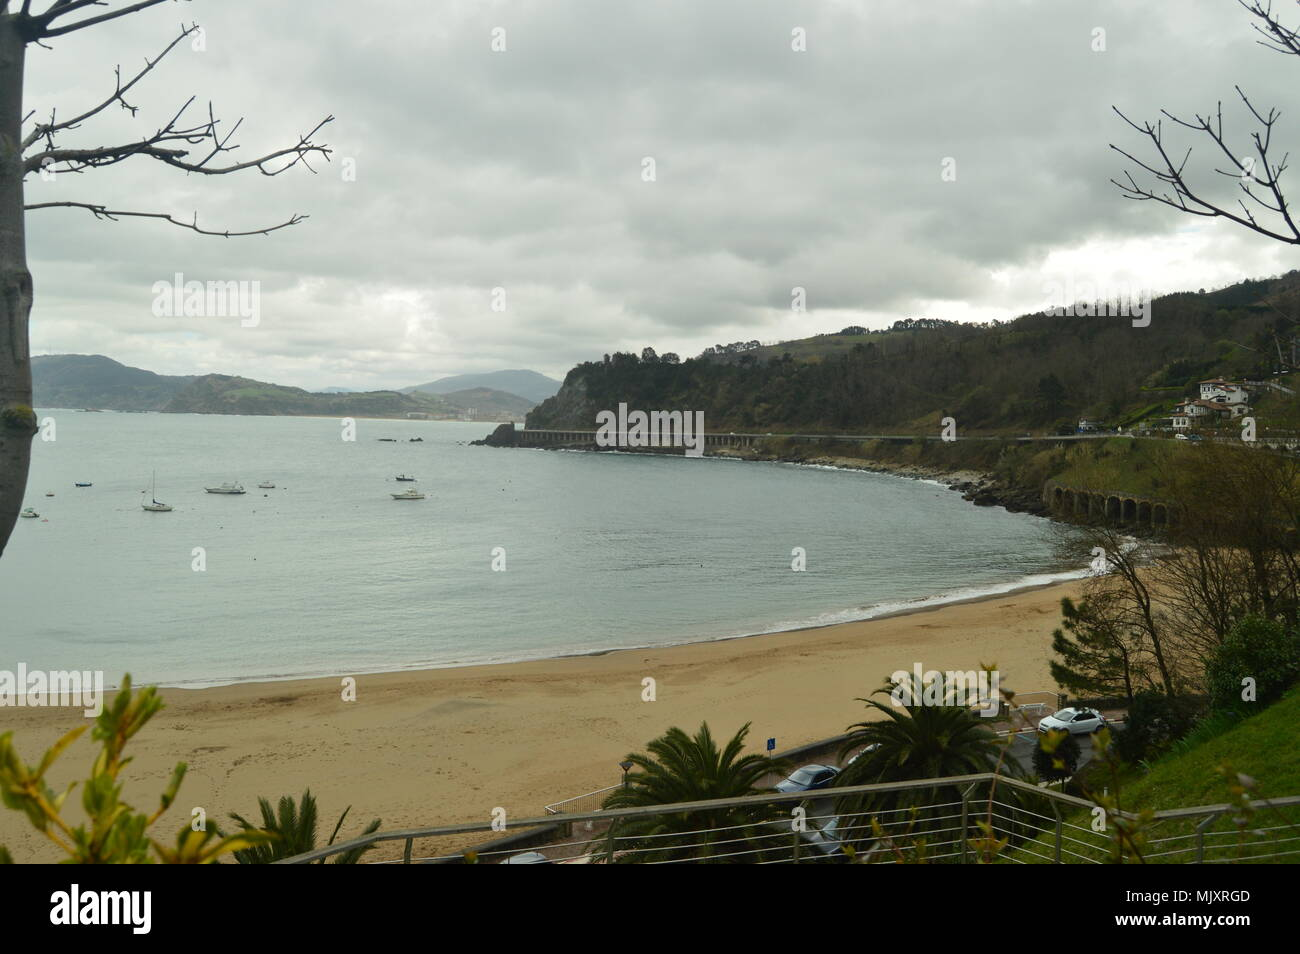 Magnificent Views Of The Beach From Its Highest Point In The Fortified Town Of Getaria. Nature Middle Ages Travel. March 26, 2018. Getaria Guipuzcoa B - Stock Image